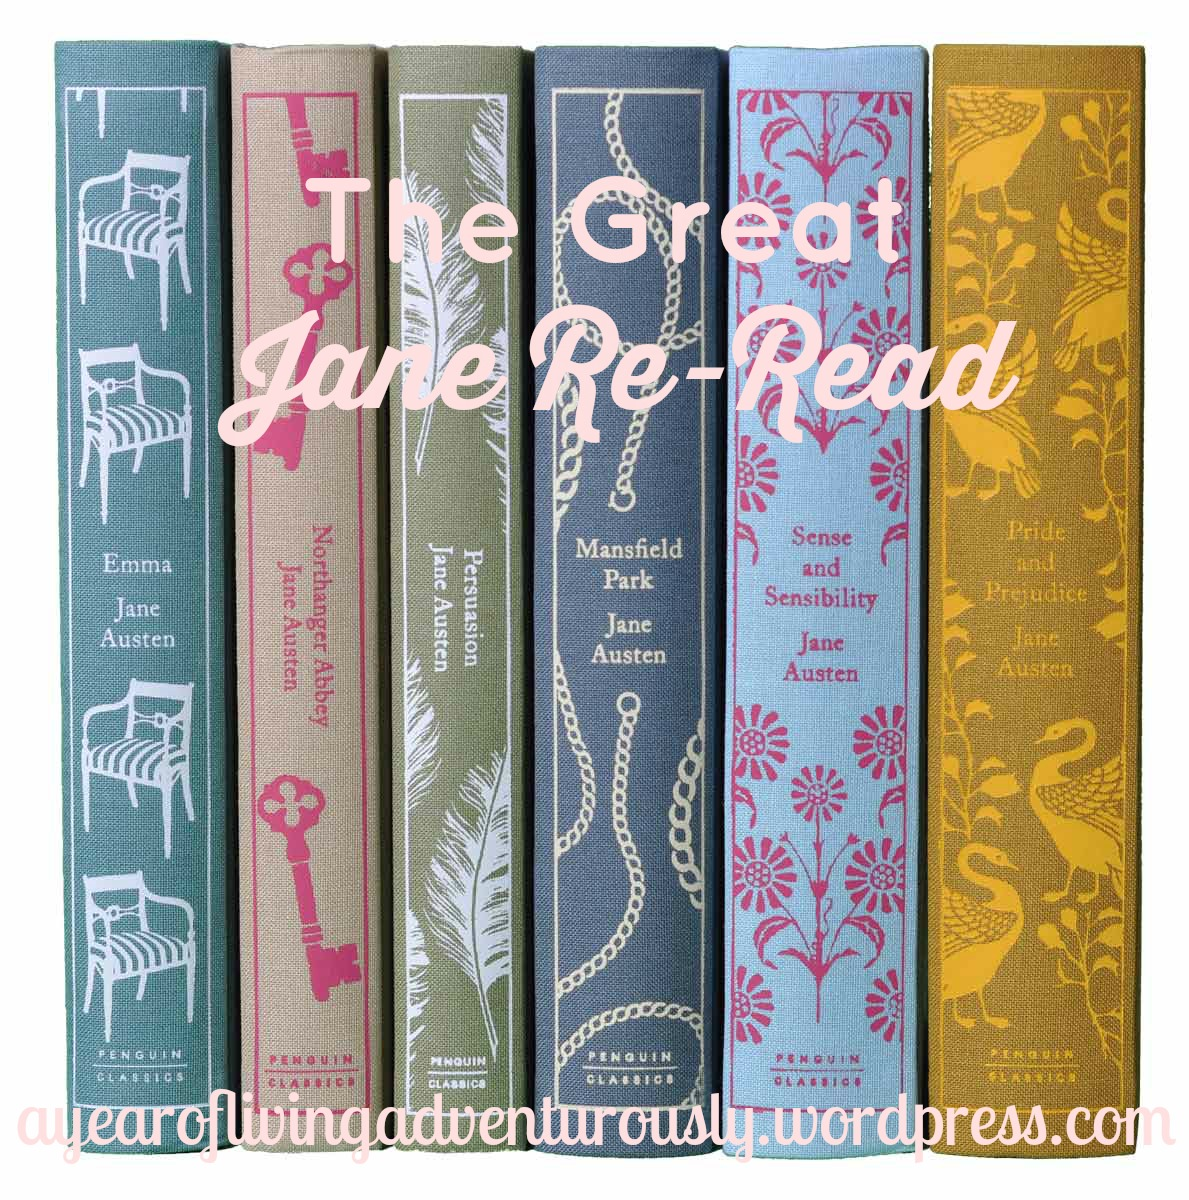 Time for the great Jane Summer Re-Read! Join me! @emily_m_deardo